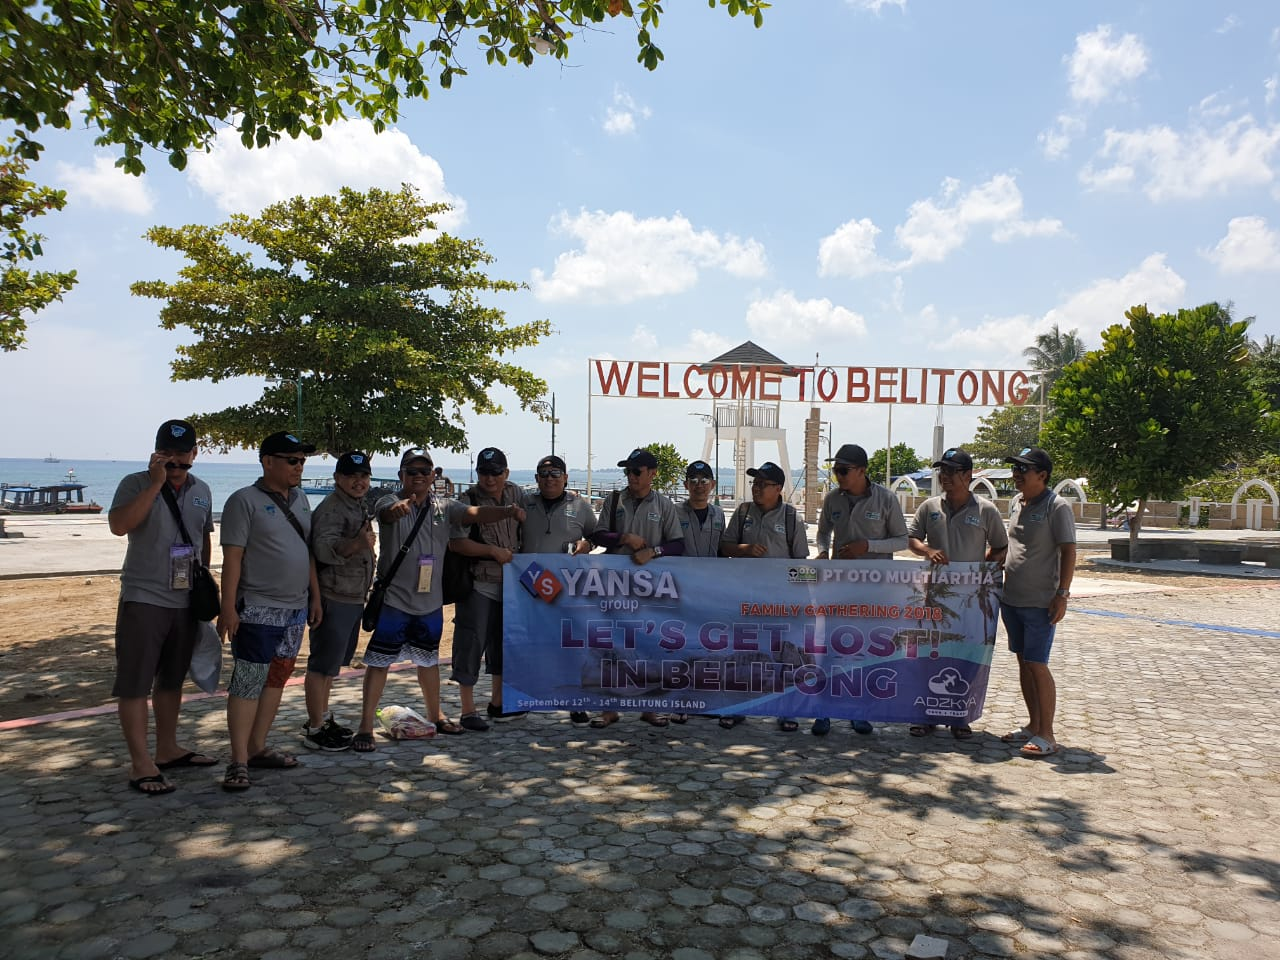 BELITUNG TOUR WITH YANSA GROUP OTO MULTIARTHA 12 - 14 SEPT 2018